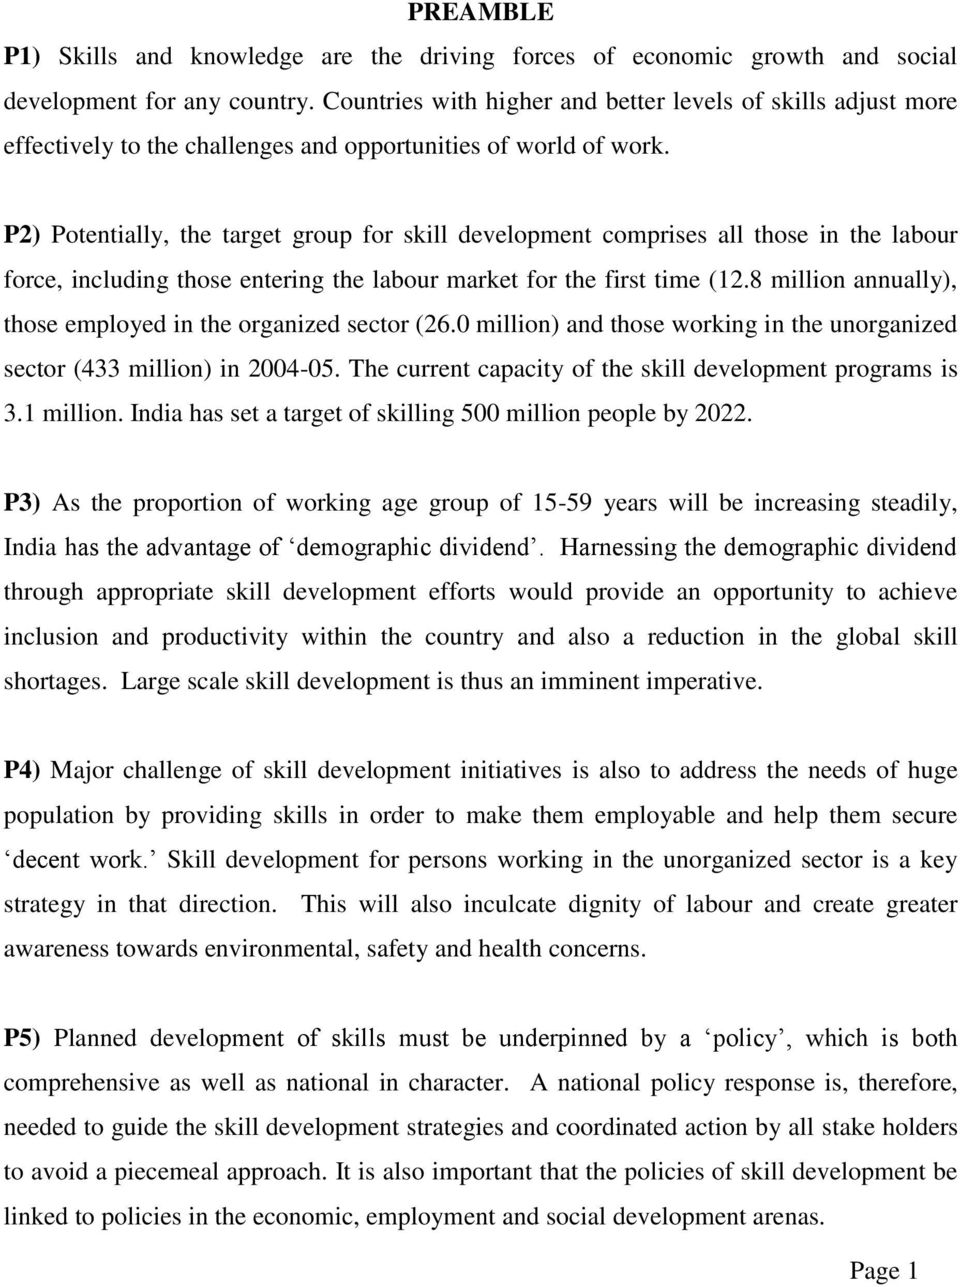 P2) Potentially, the target group for skill development comprises all those in the labour force, including those entering the labour market for the first time (12.